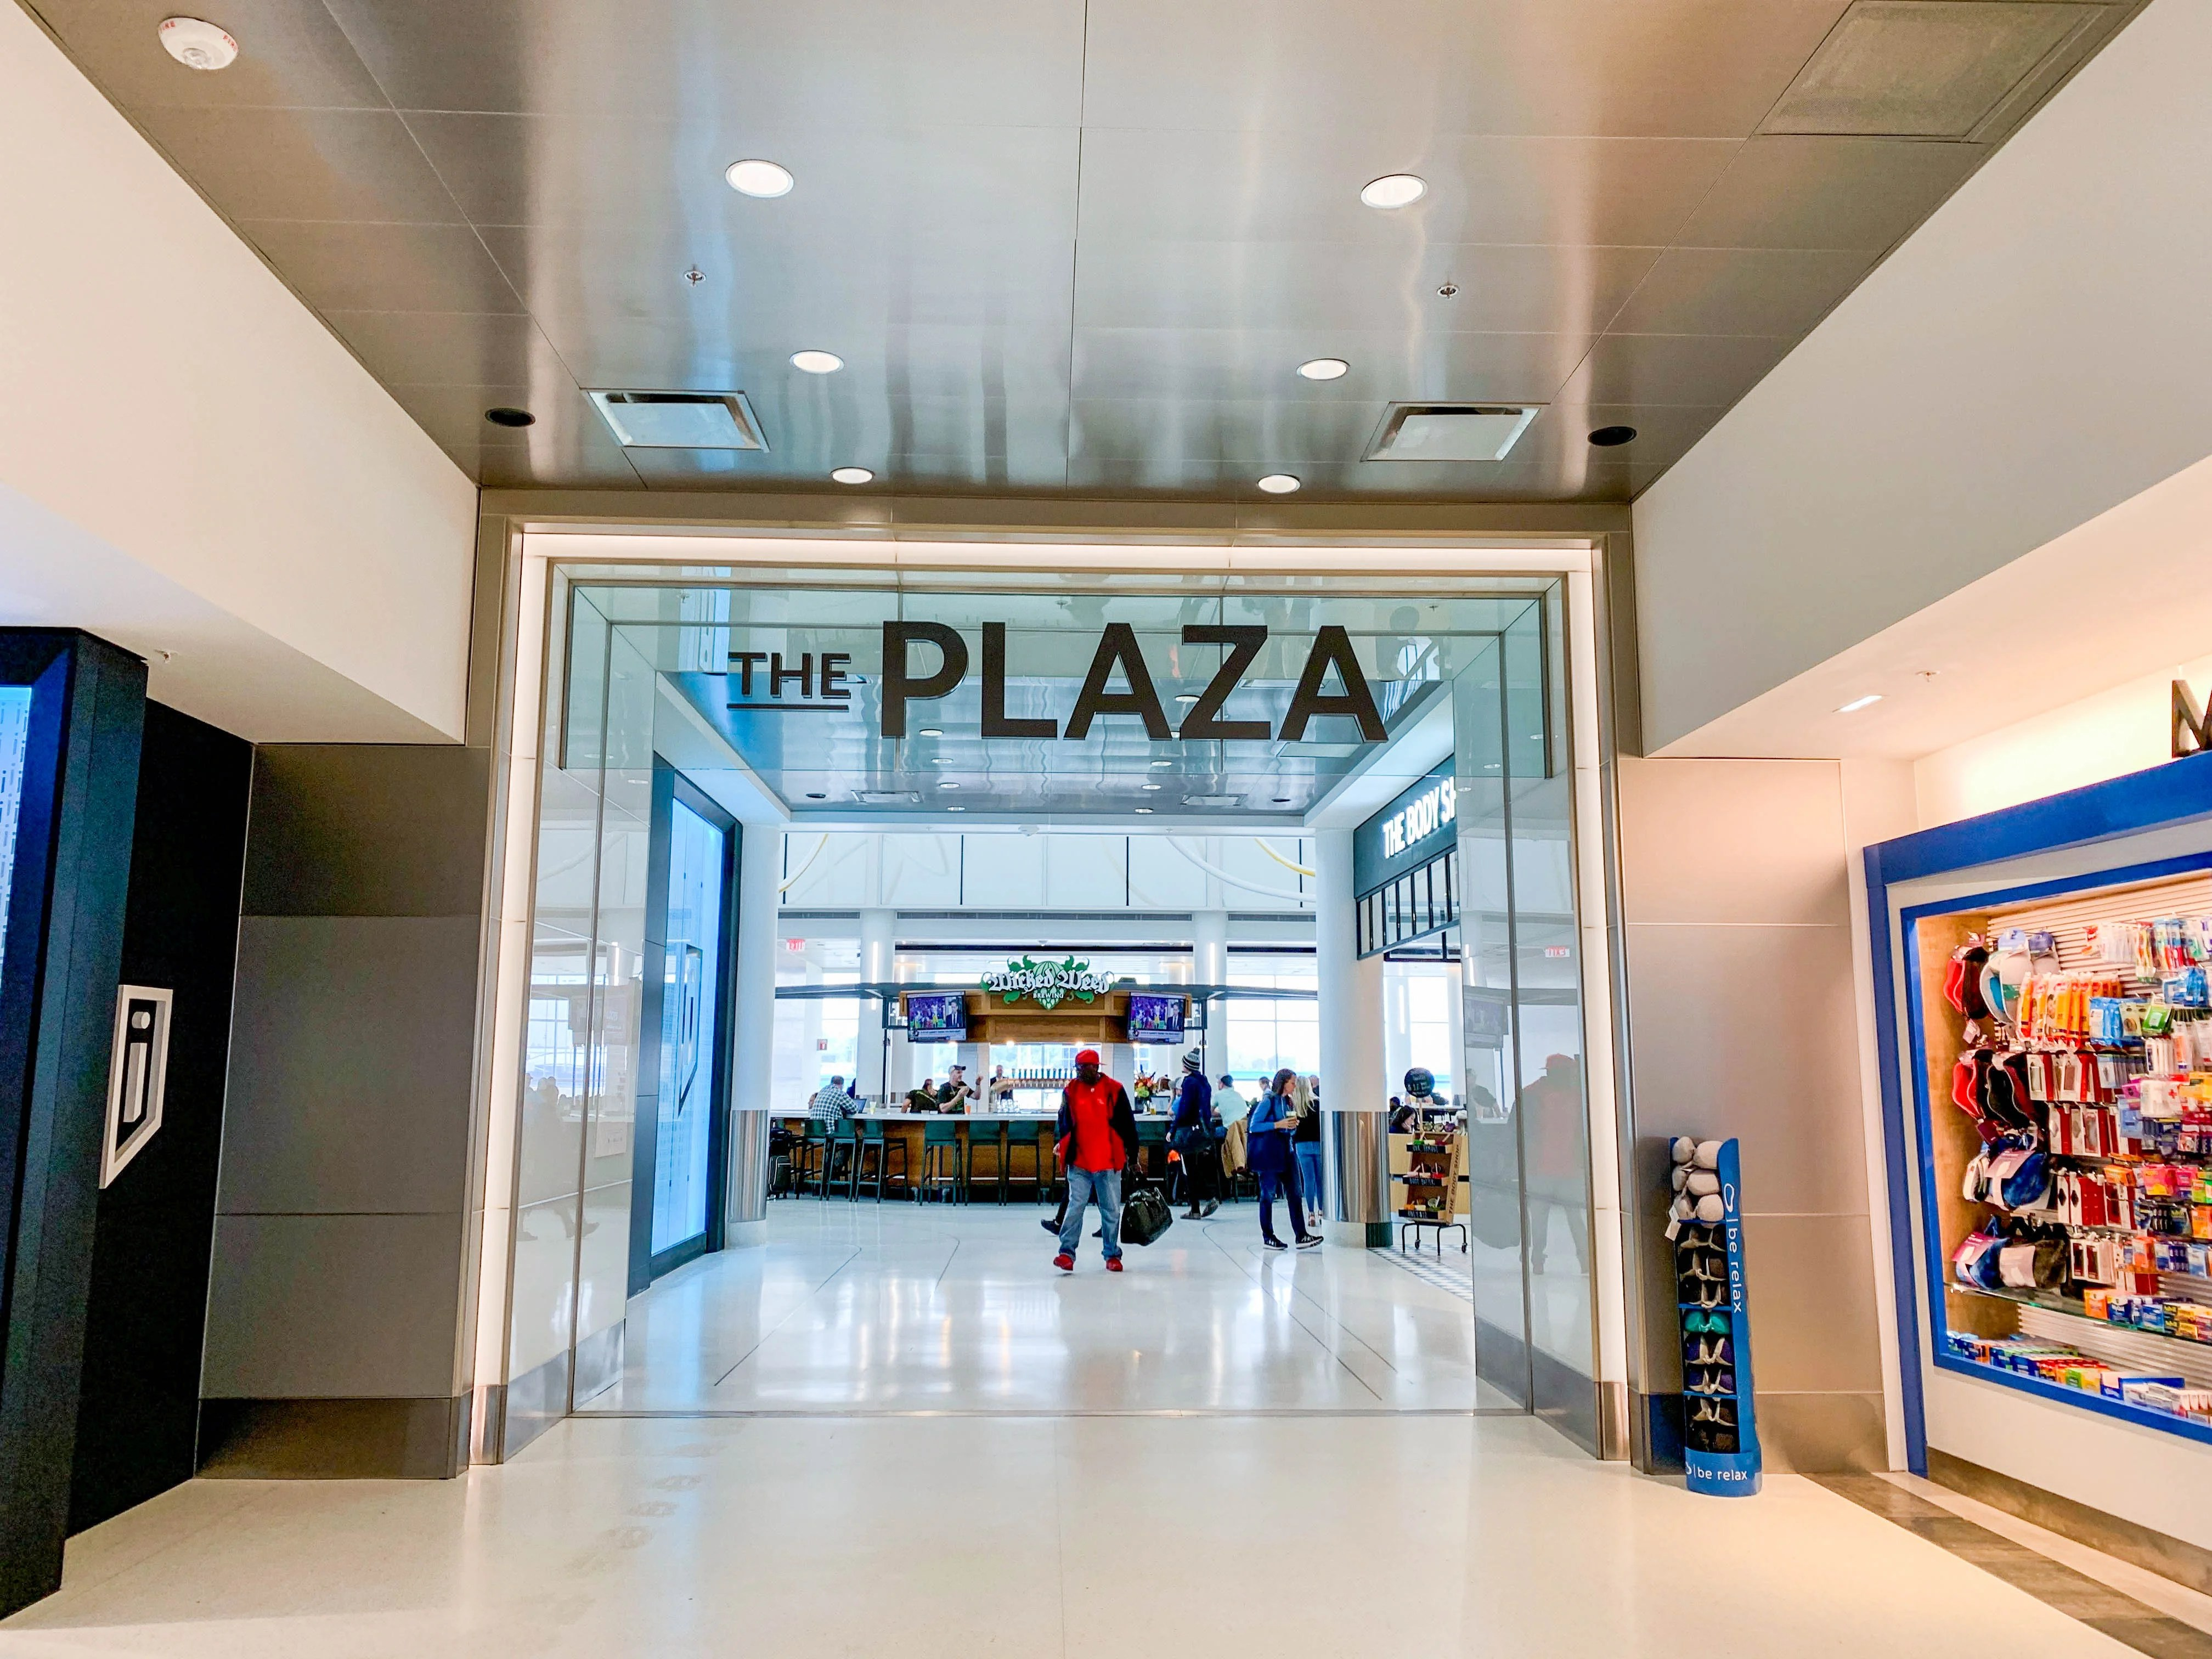 CLT airport expansion brings new dining, shopping experiences to travelers